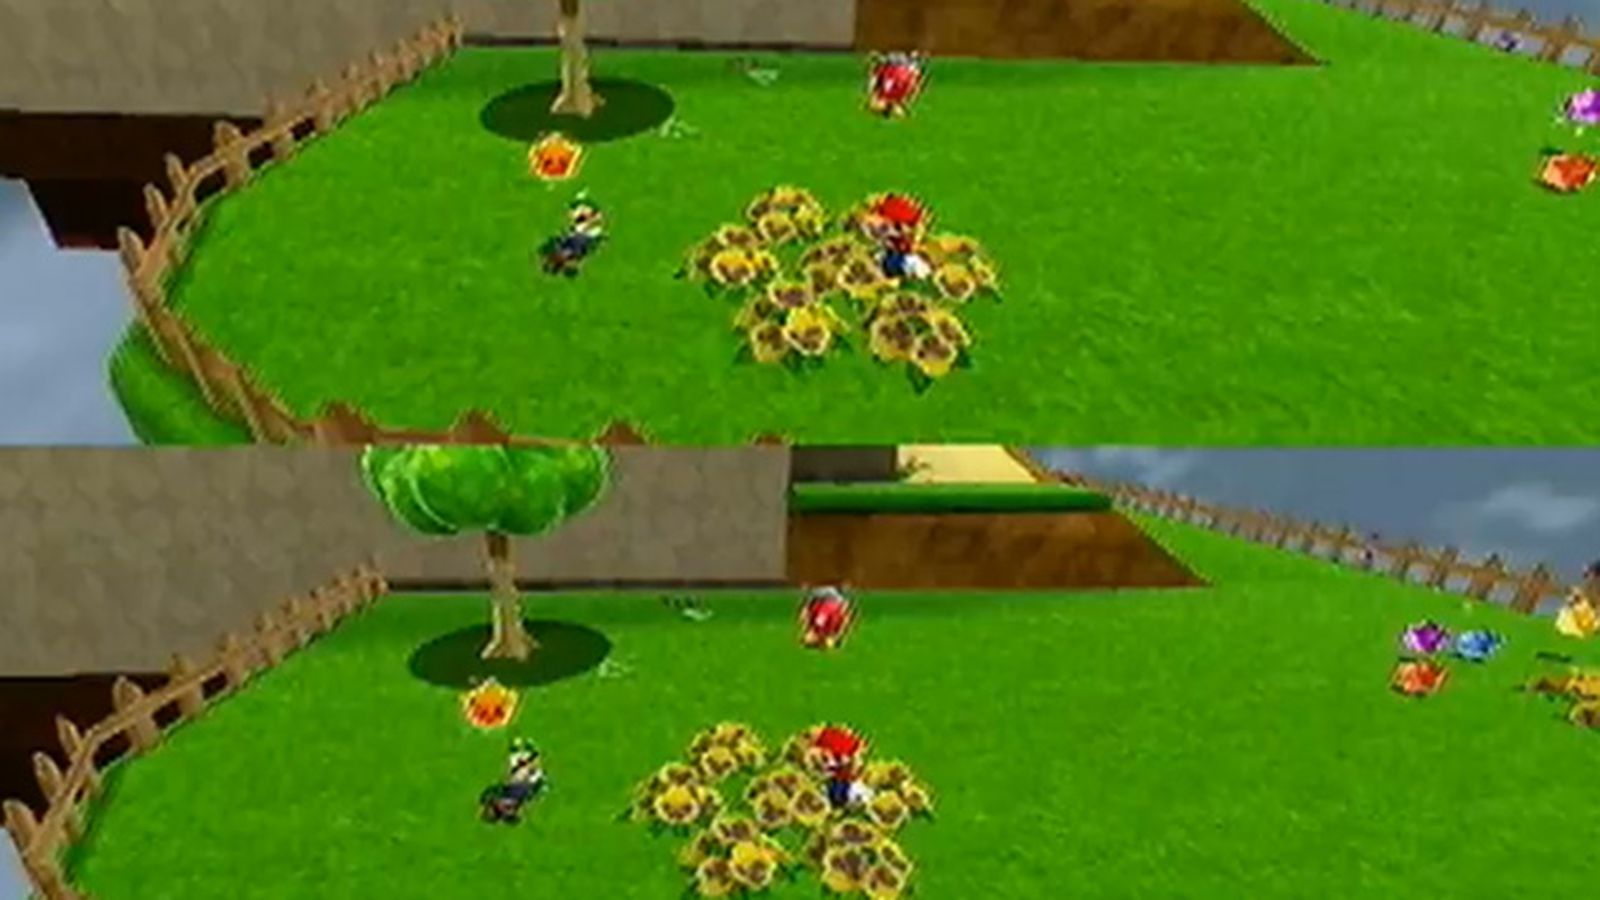 u0026 39 super mario galaxy 2 u0026 39  split